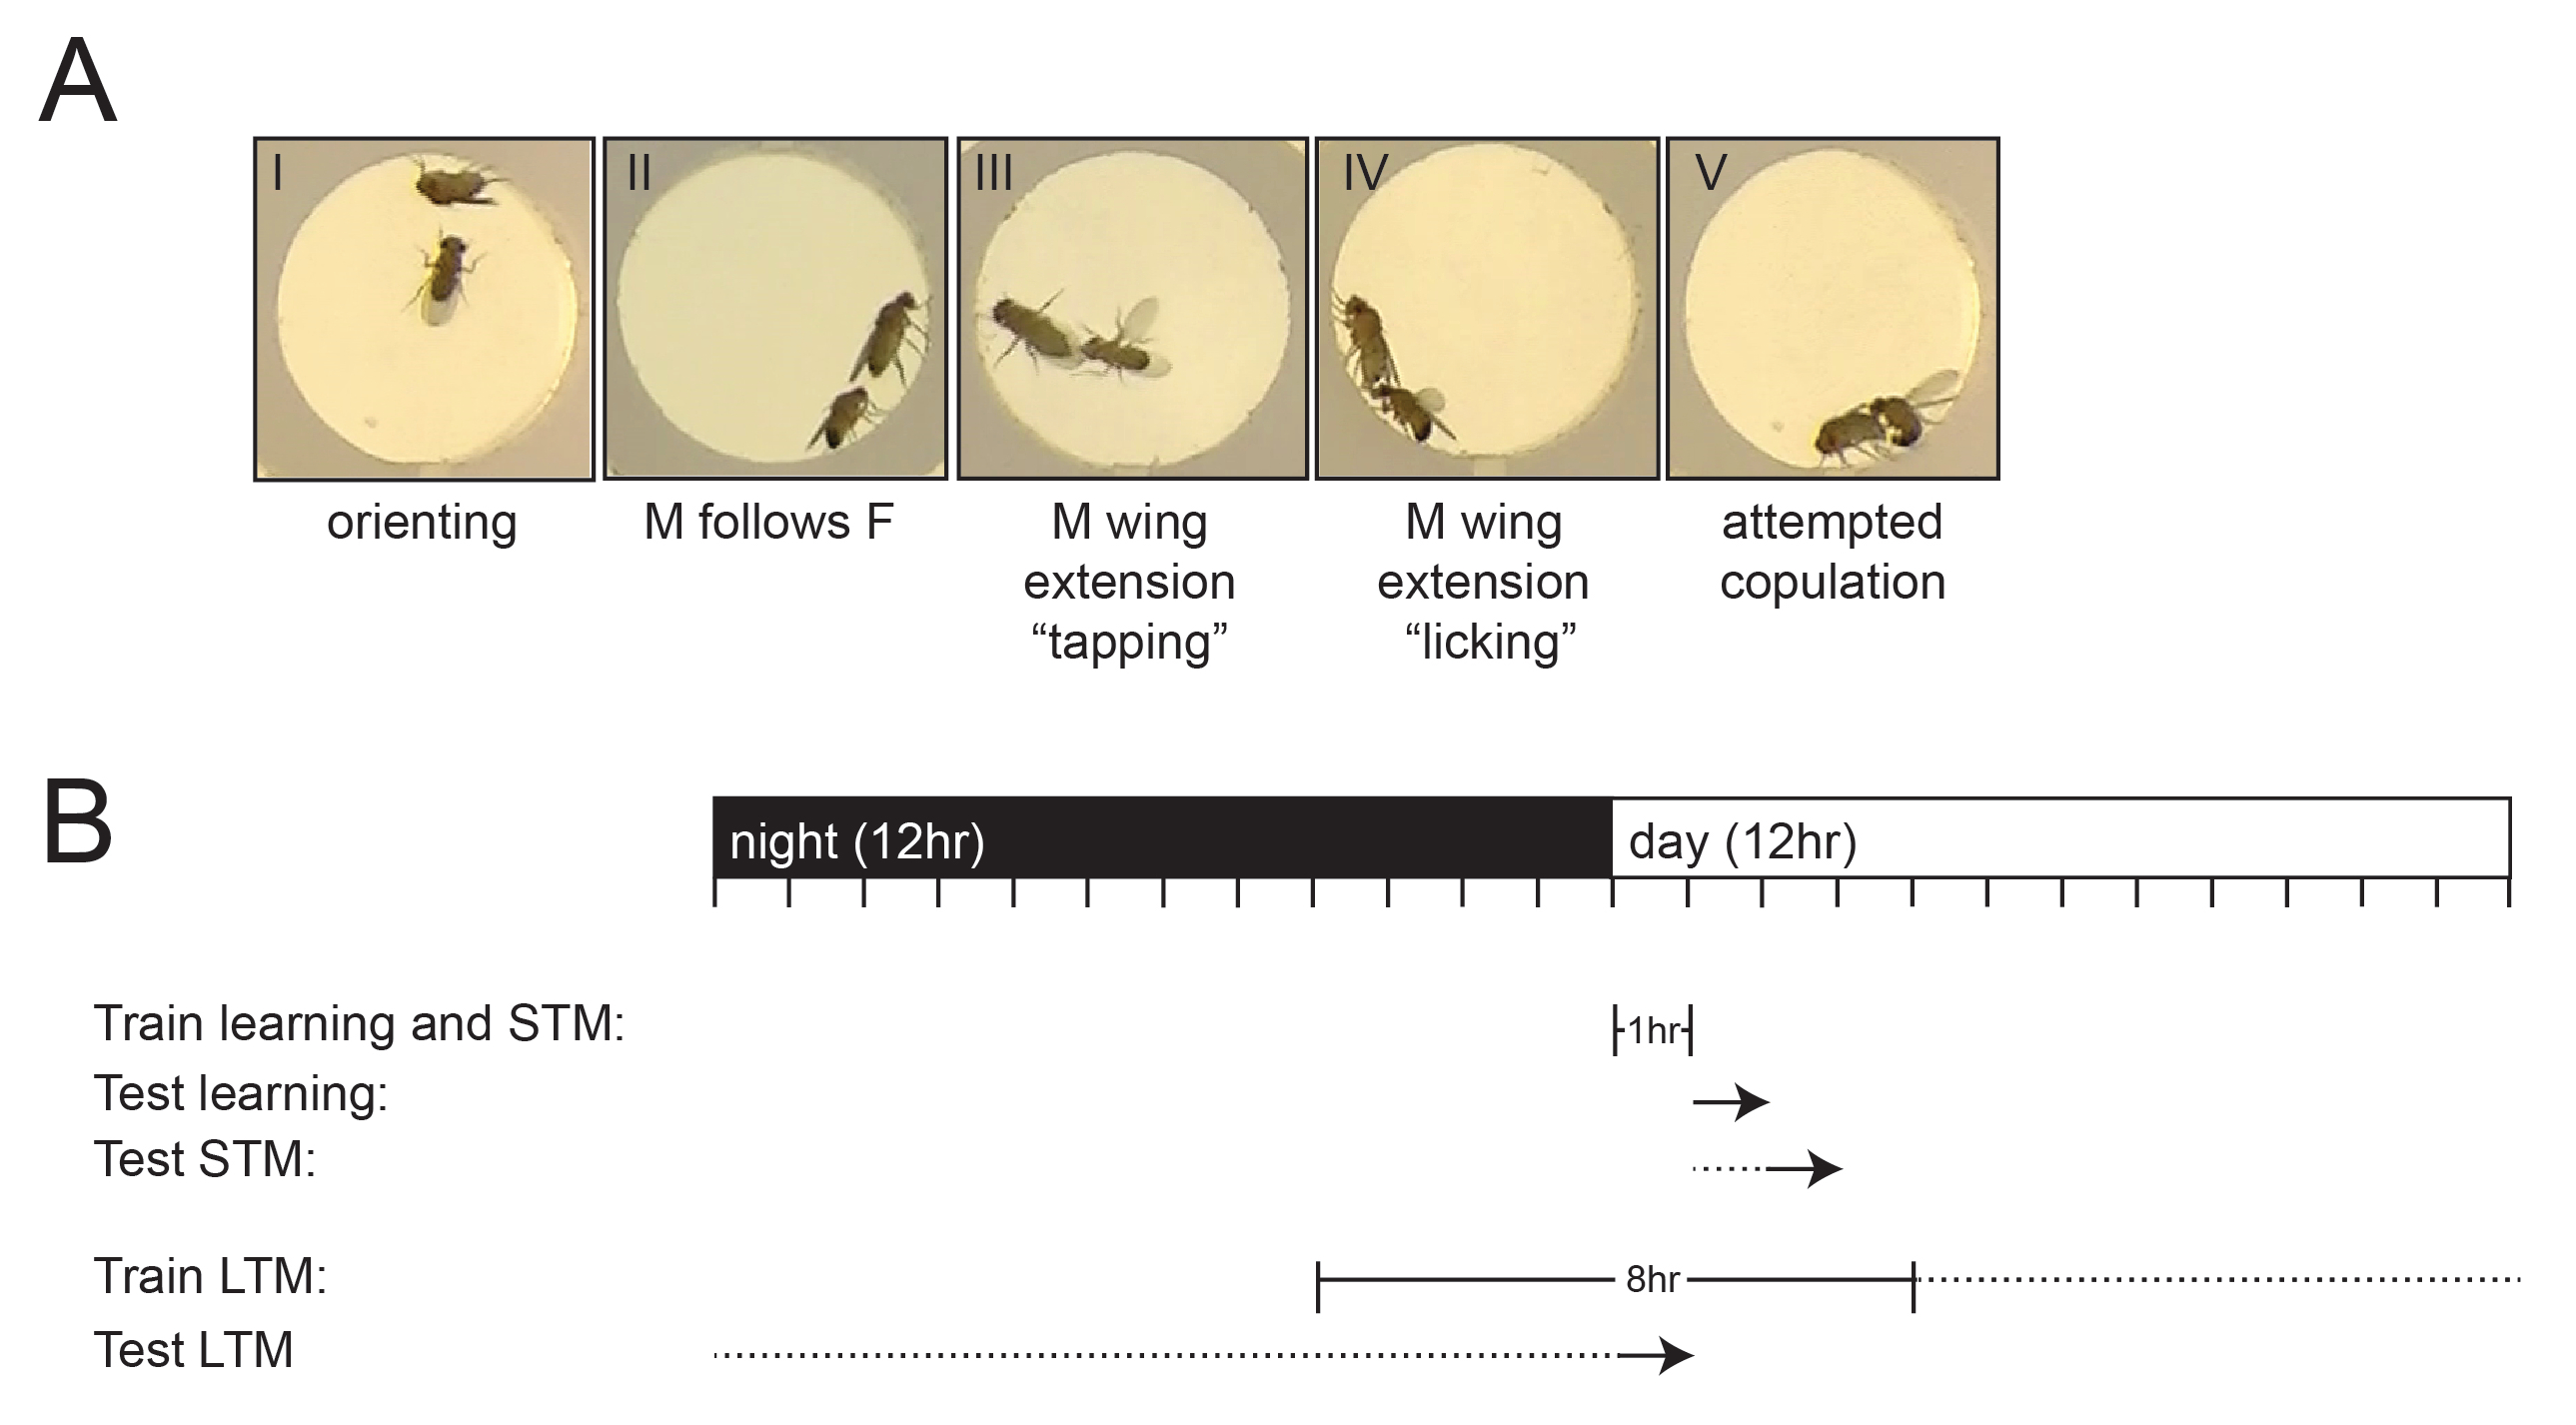 Drosophila Courtship Conditioning As a Measure of Learning and